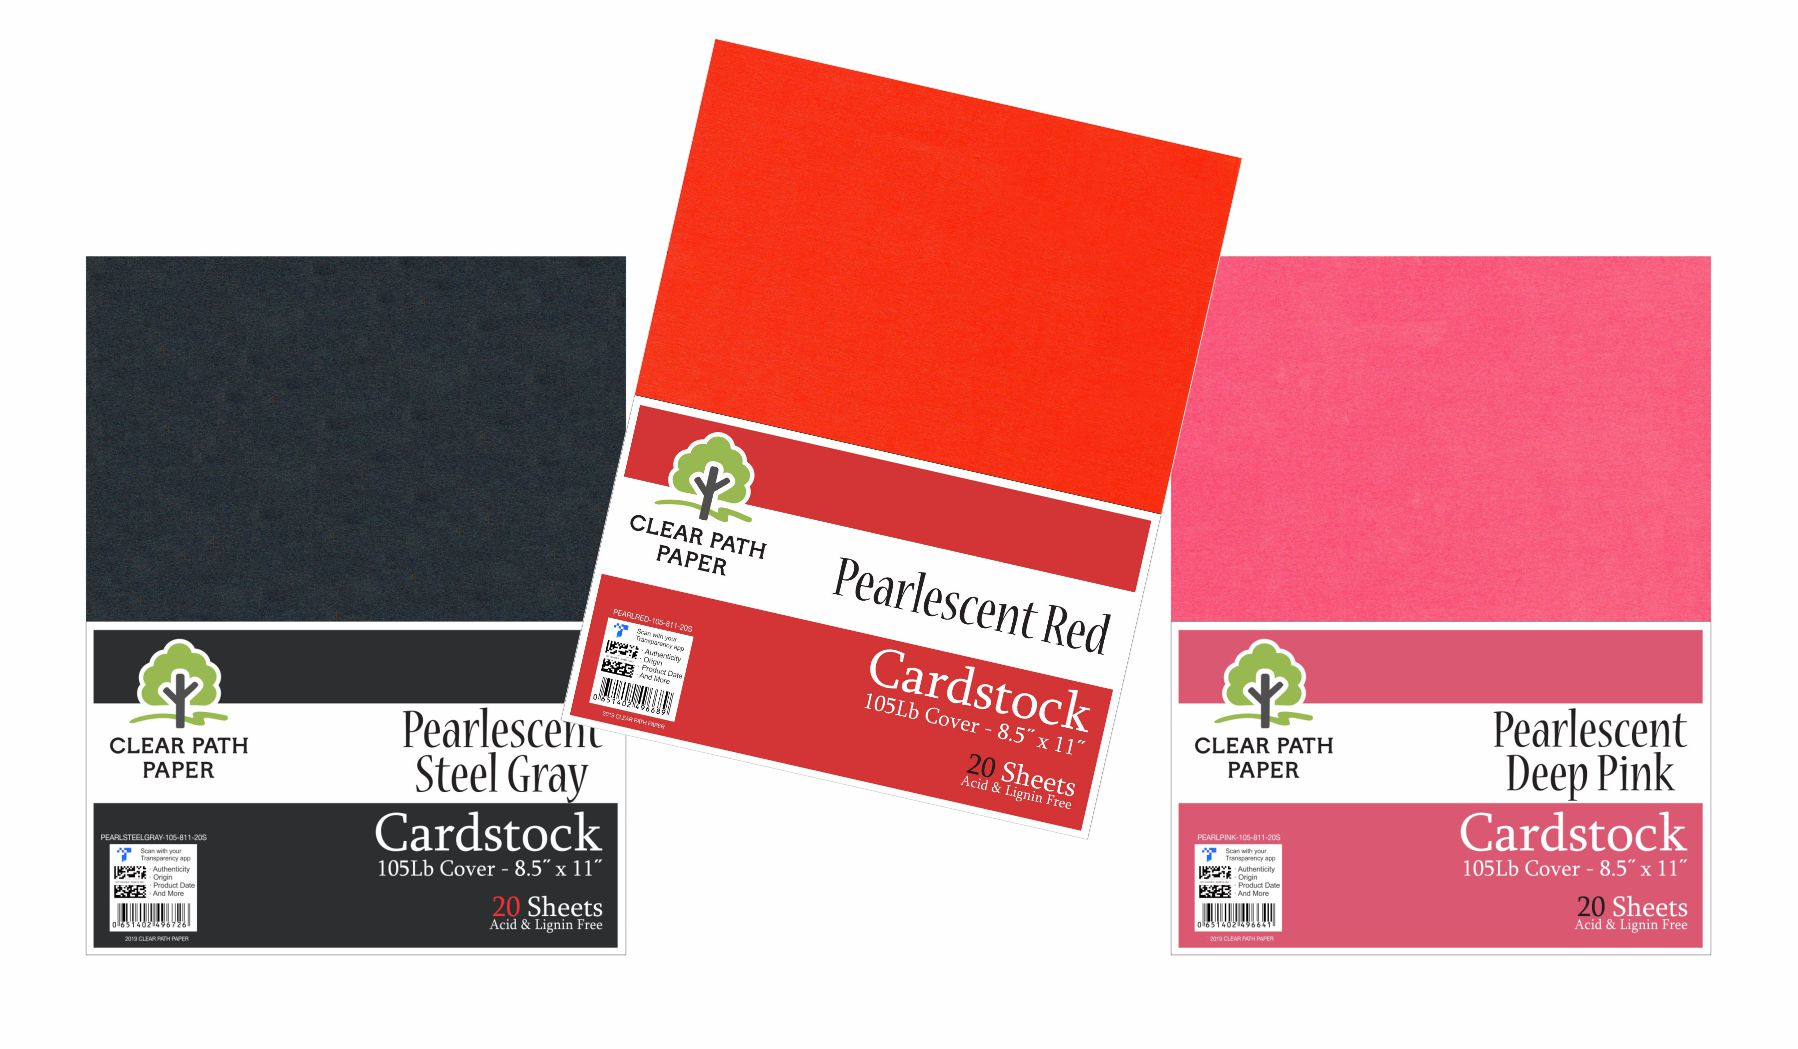 Image of an Amazon bundle of Clear Path Paper cardstock in Pearlescent Deep Pink, Pearlescent Steel Gray, and Pearlescent Red